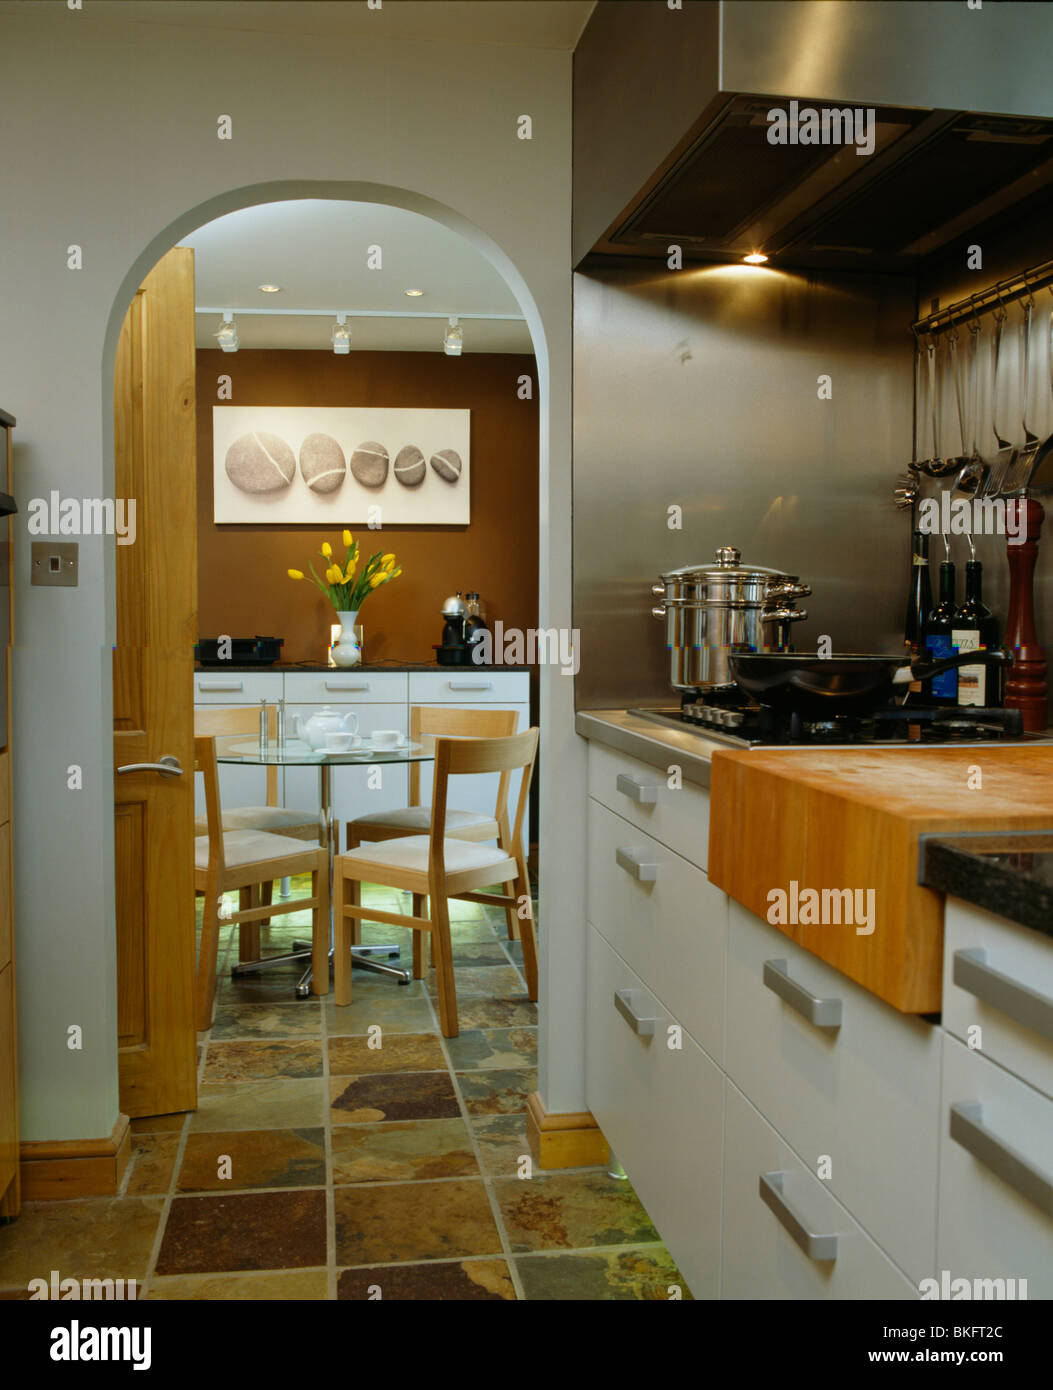 Flooring For Dining Room Modern Kitchen With Arched Doorway And Tiled Flooring To Dining